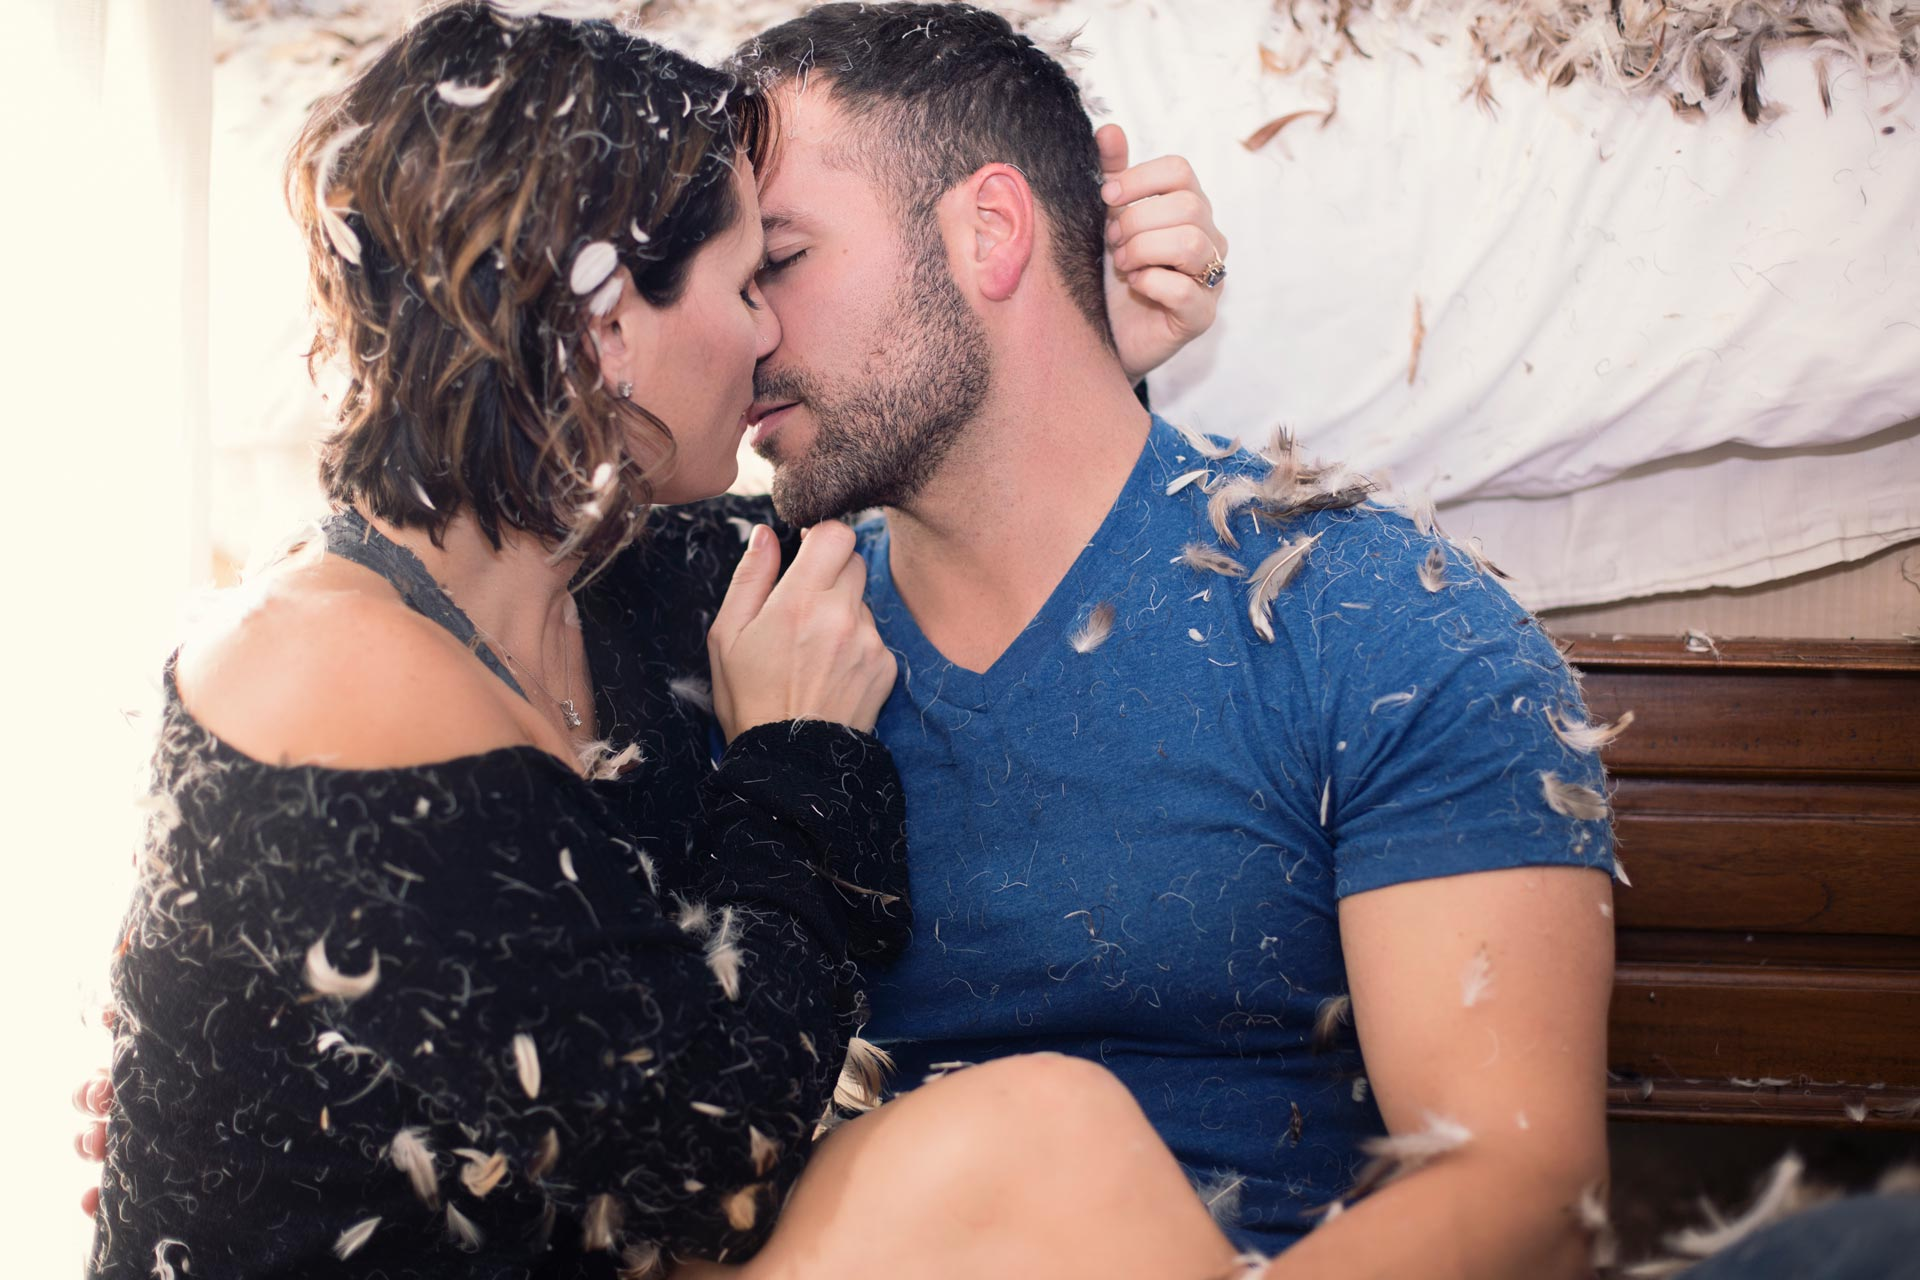 Couple Making Up After an Intense Pillow Fight